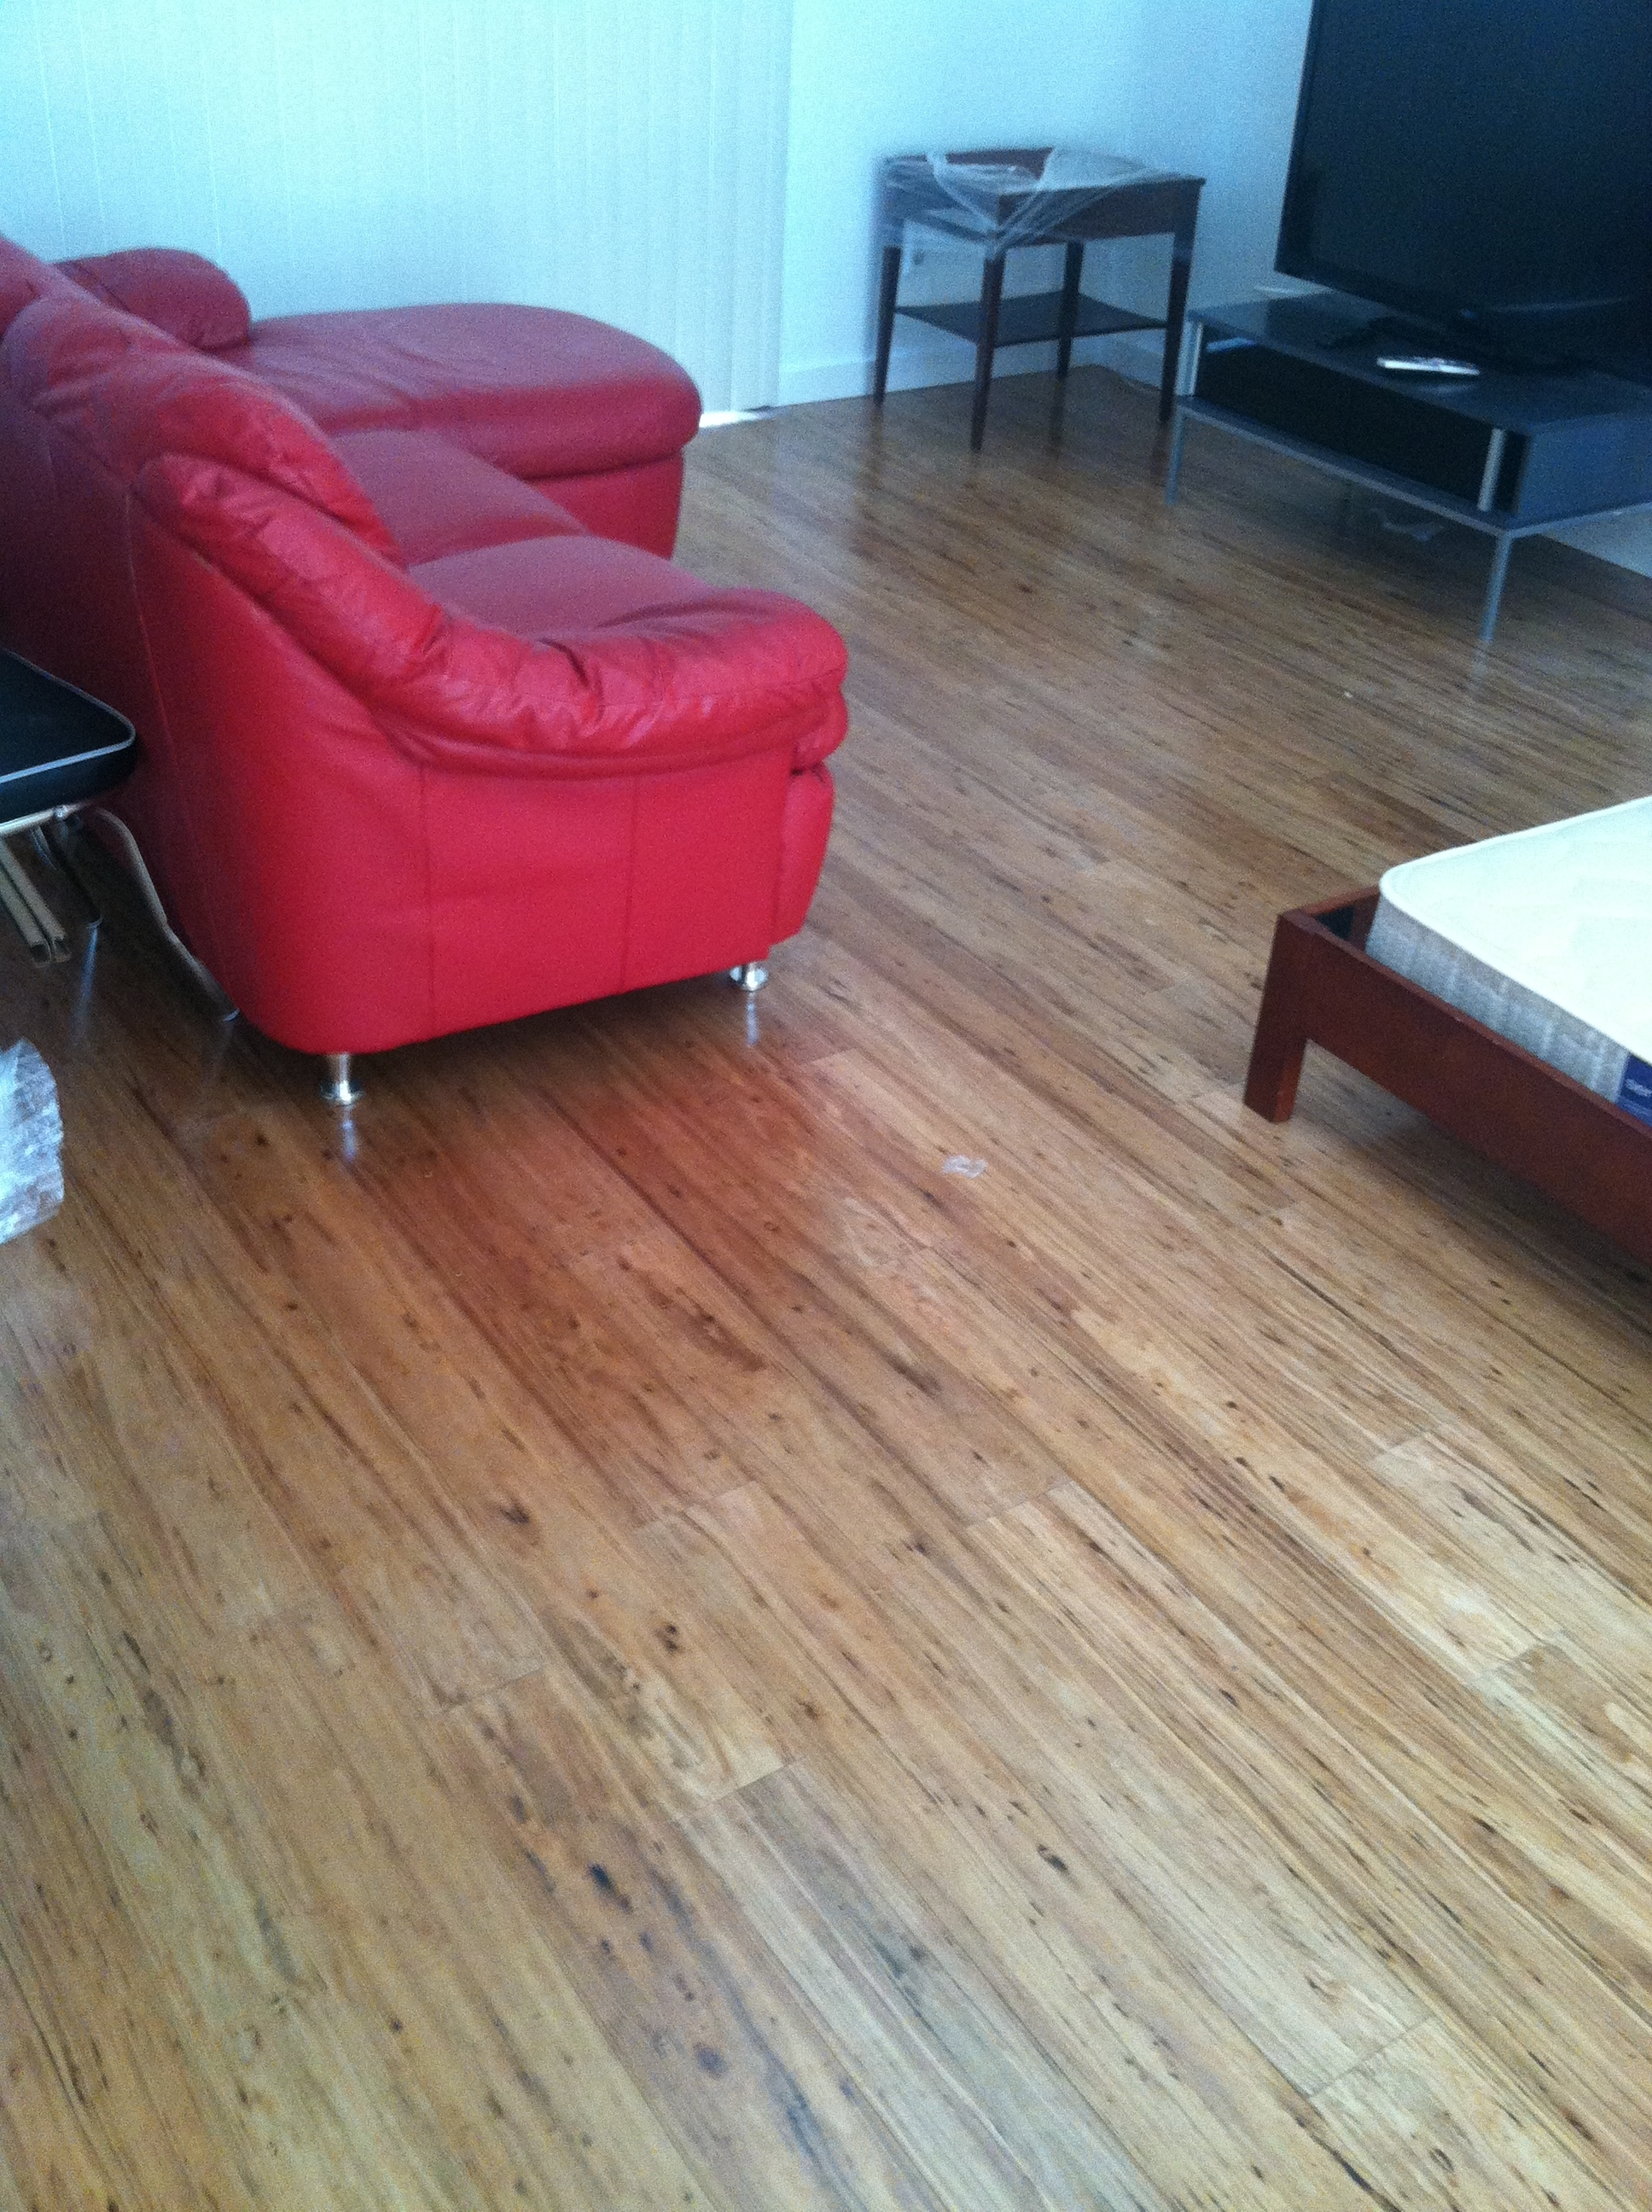 Bamboo Floor Types: Vertical, Horizontal, and Strand-Woven